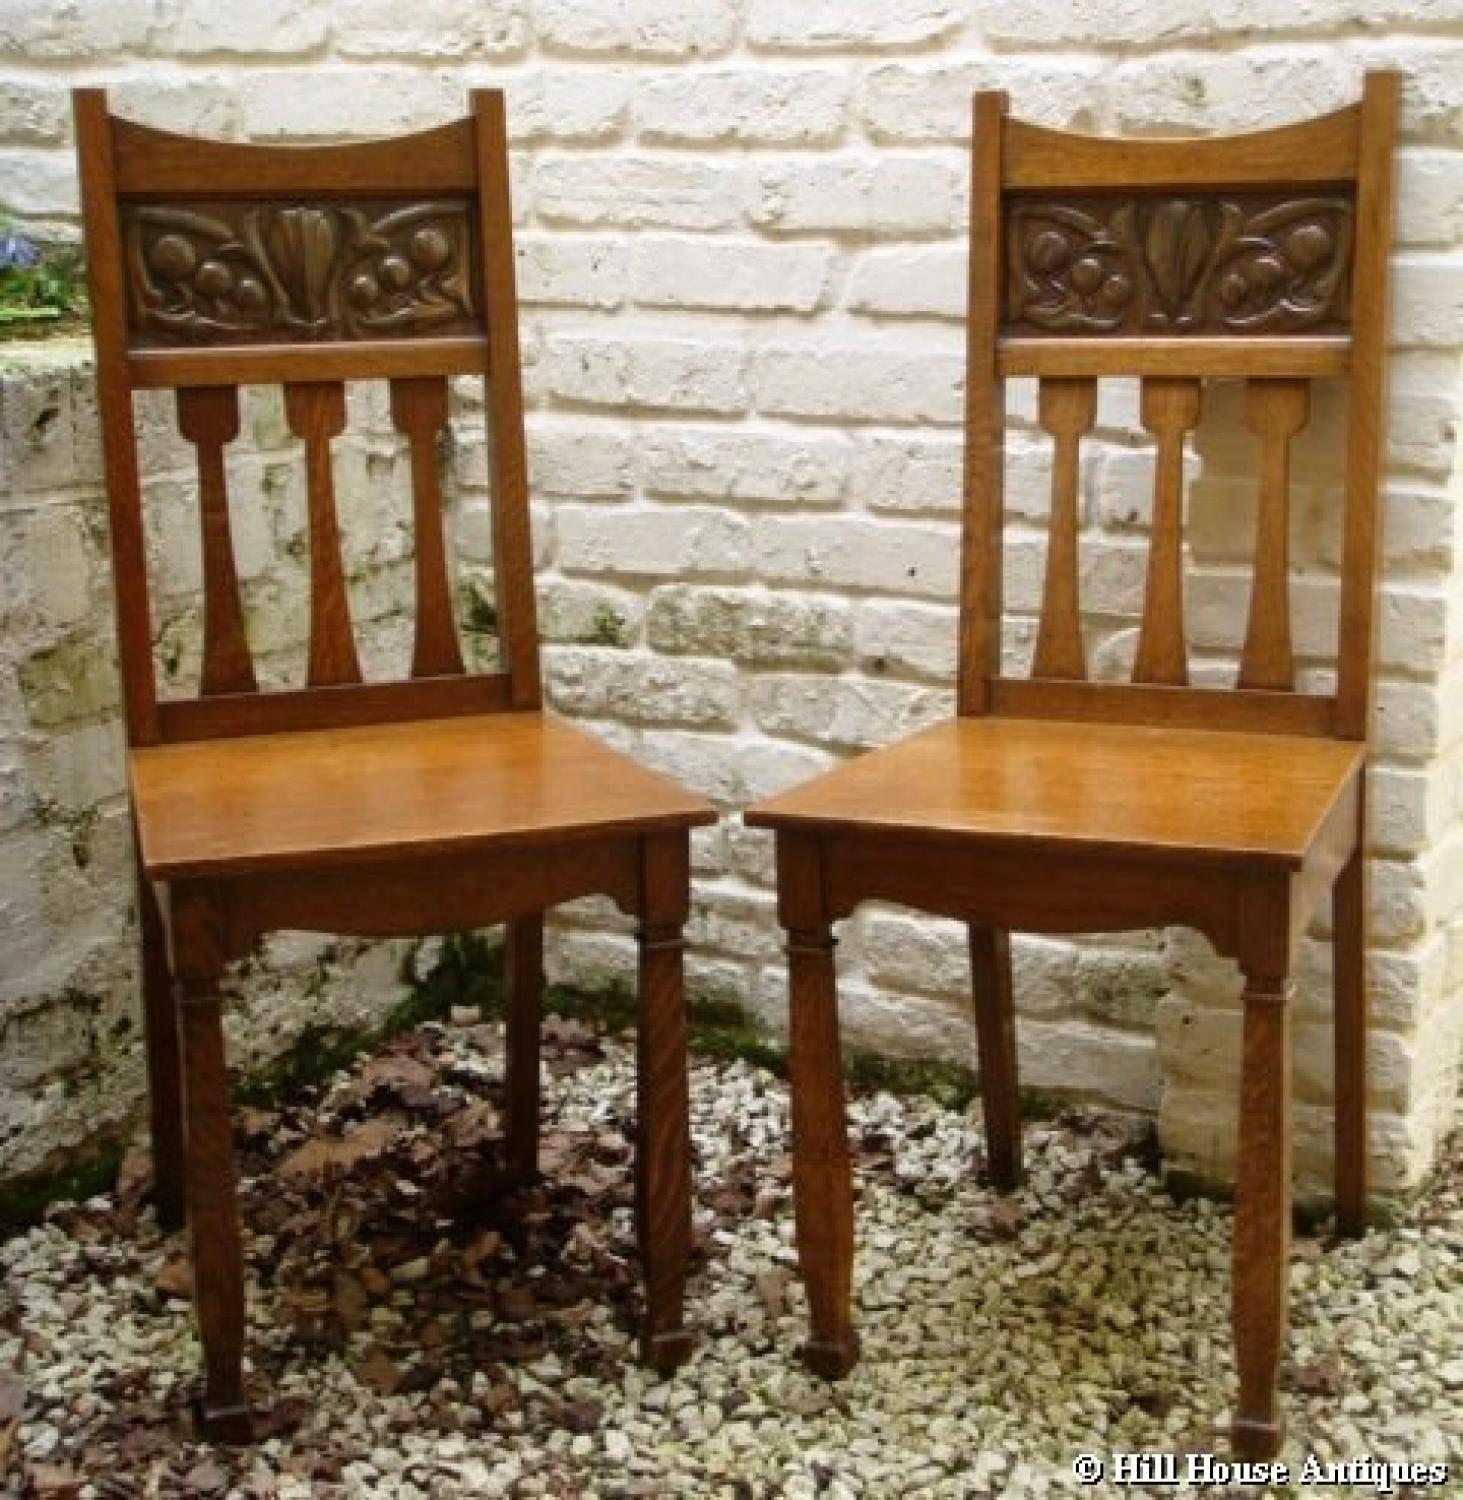 Shapland & Petter oak & copper hall chairs